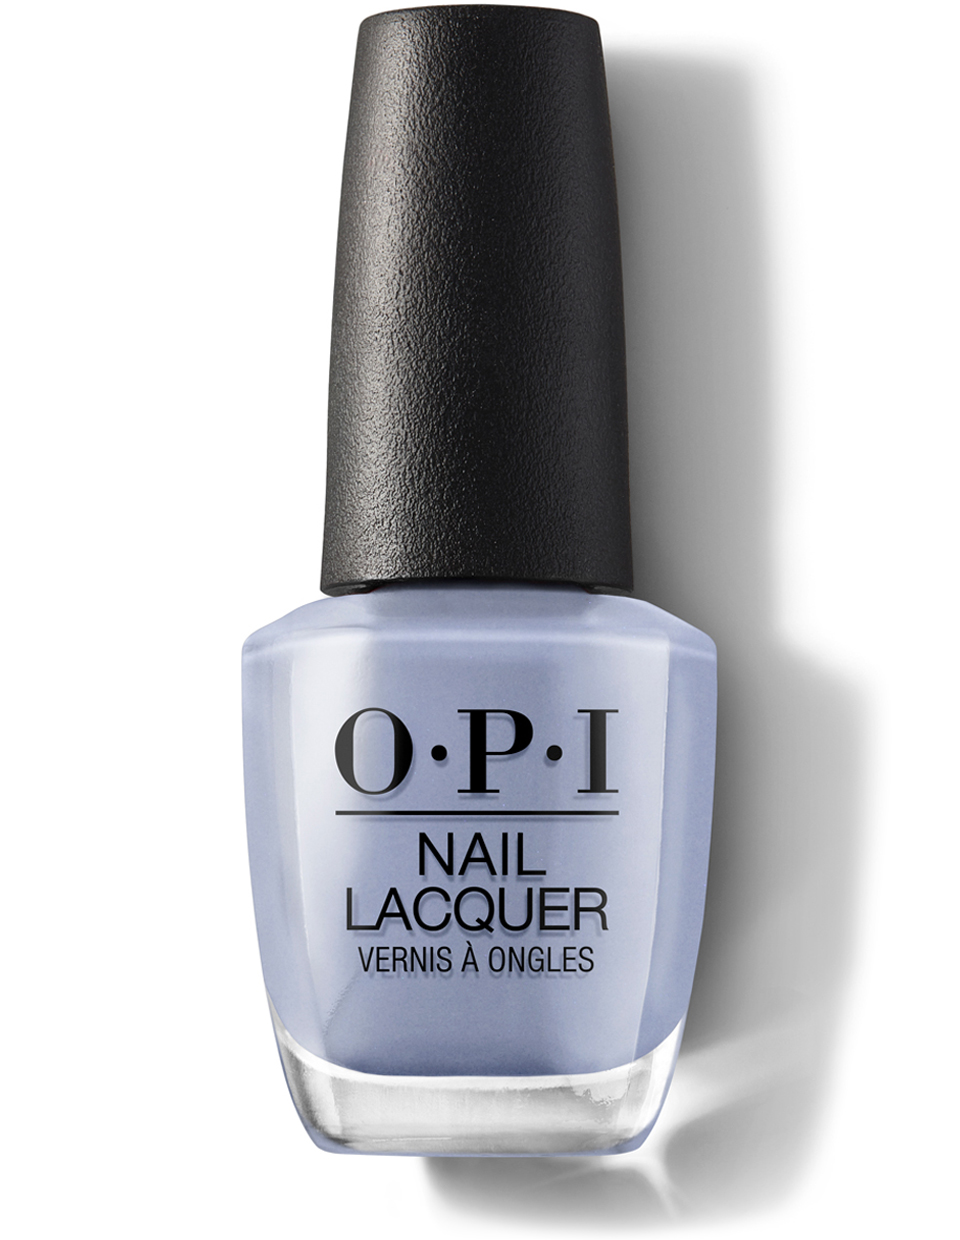 Check Out the Old Geysirs - Nail Lacquer | OPI